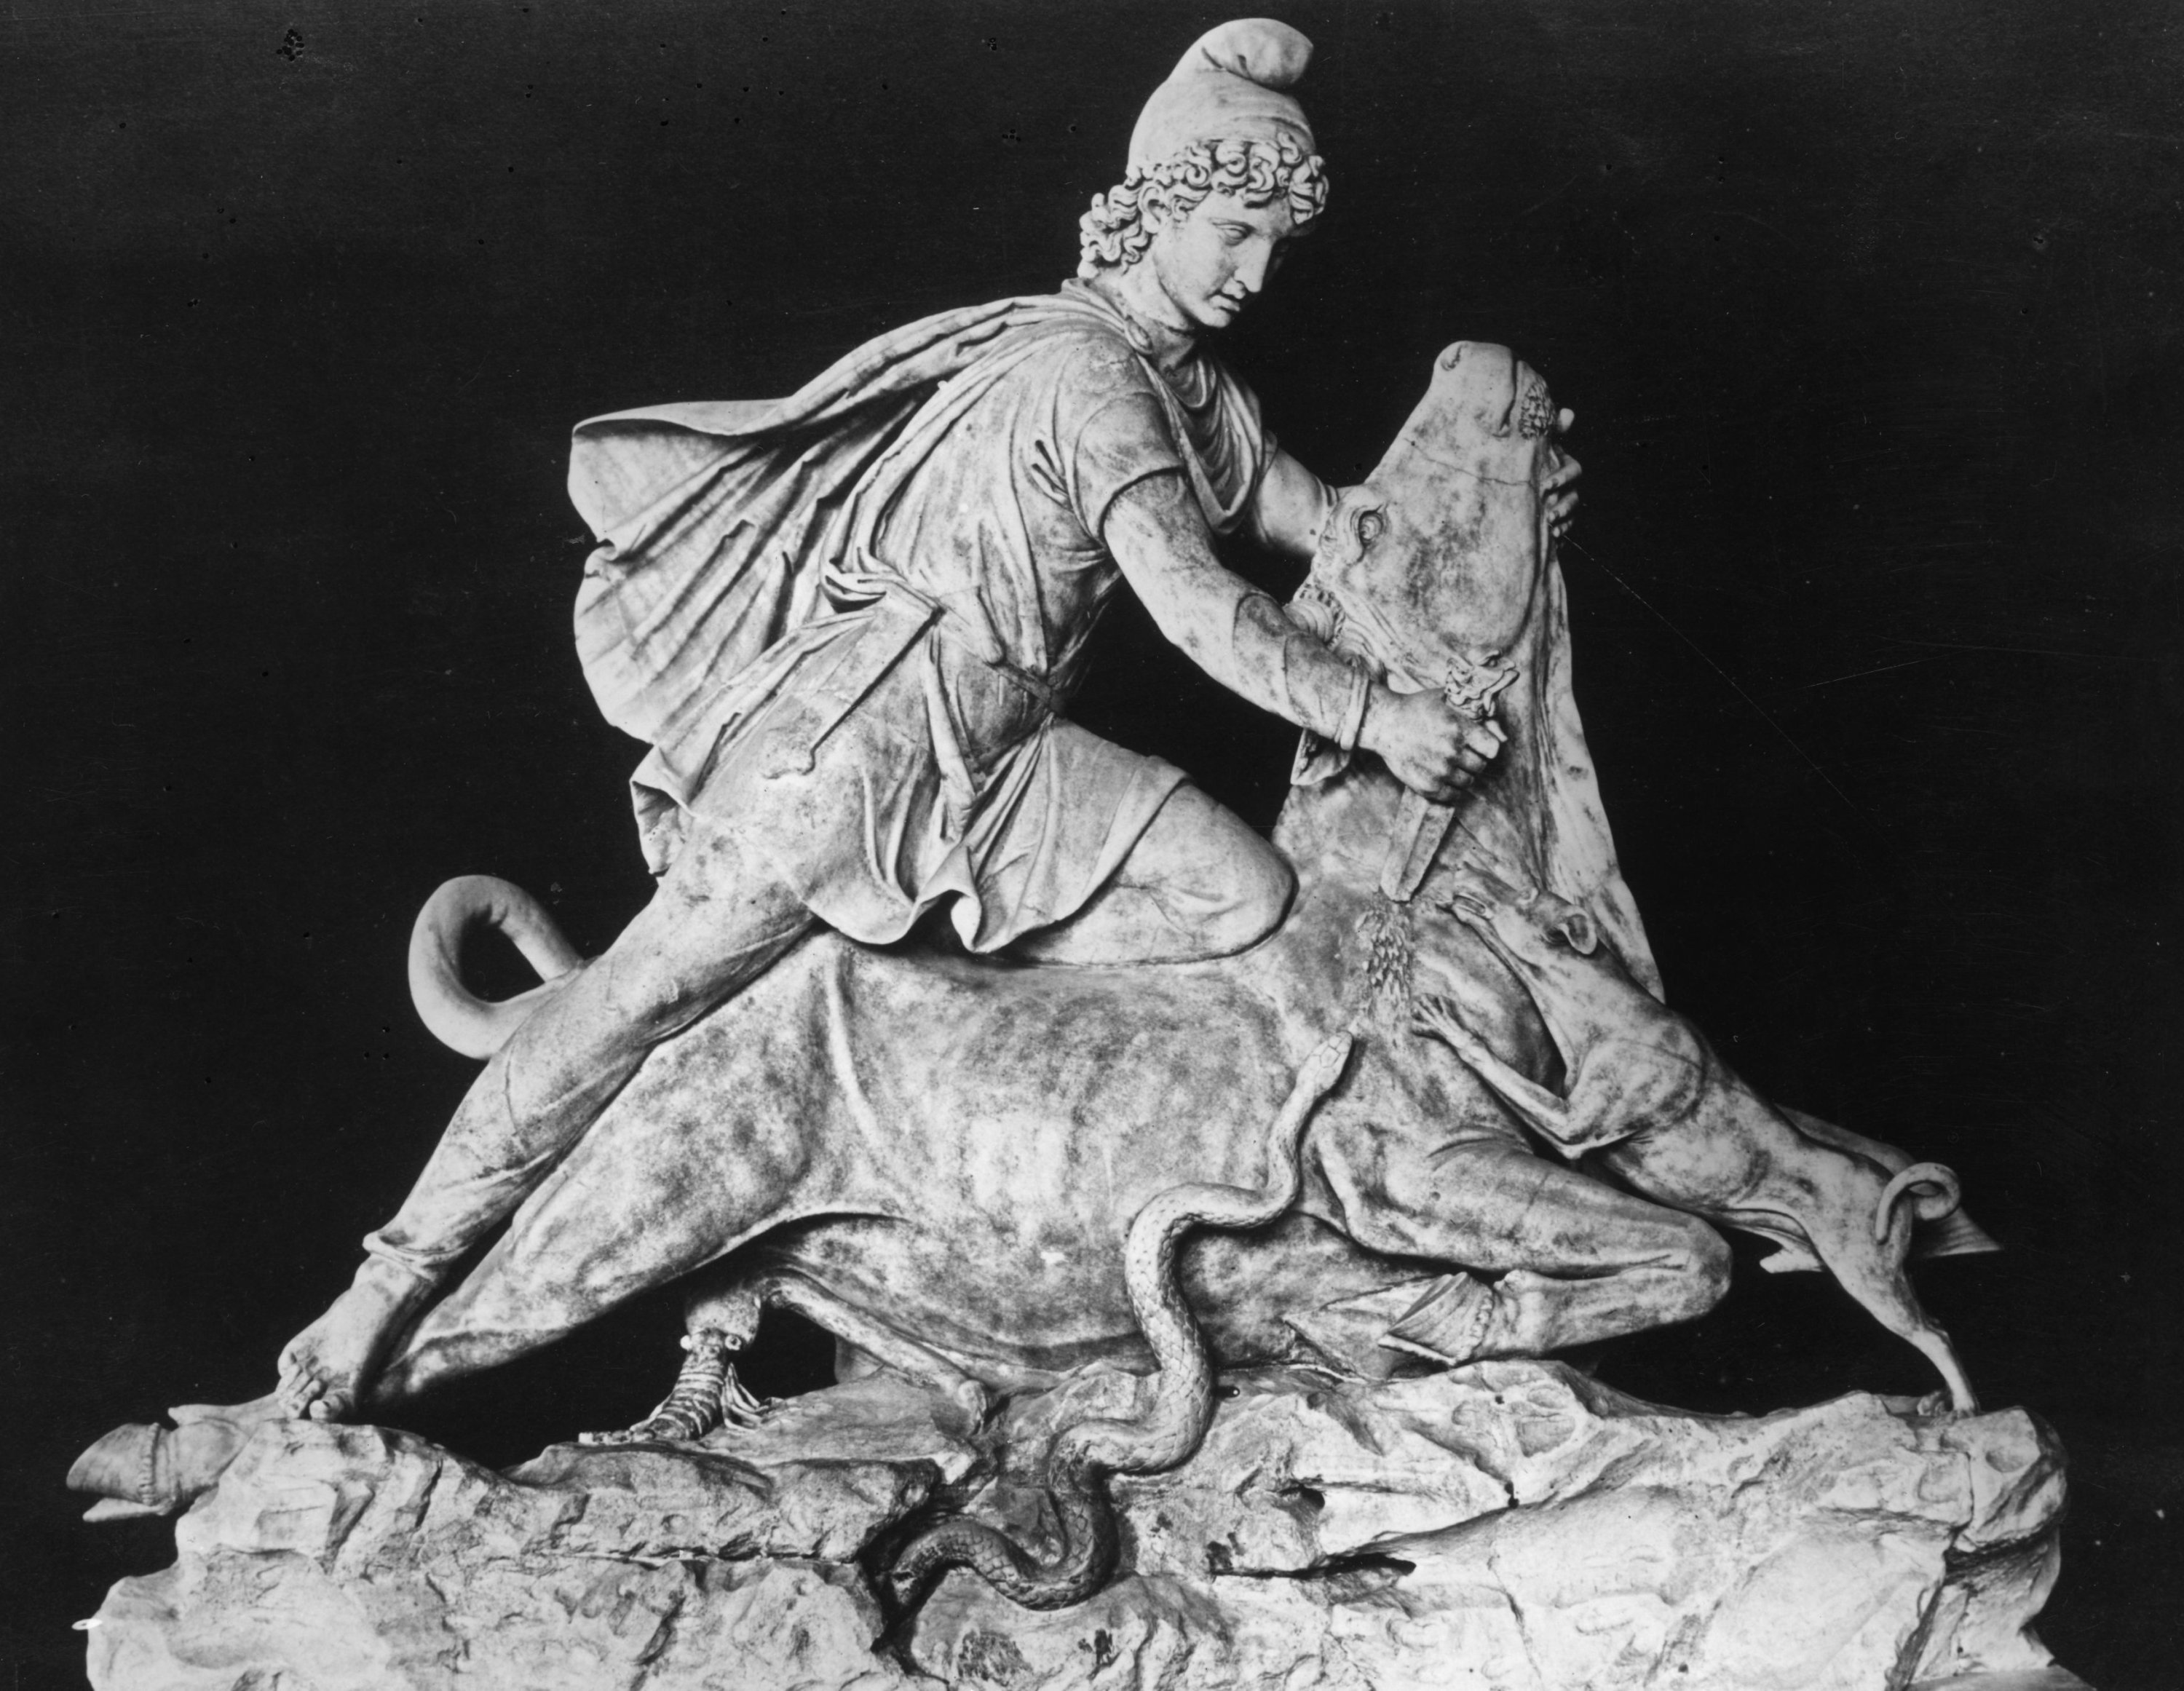 A cult statue of the sun god Mithra slaying the sacred bull with his dagger. (Getty Images)